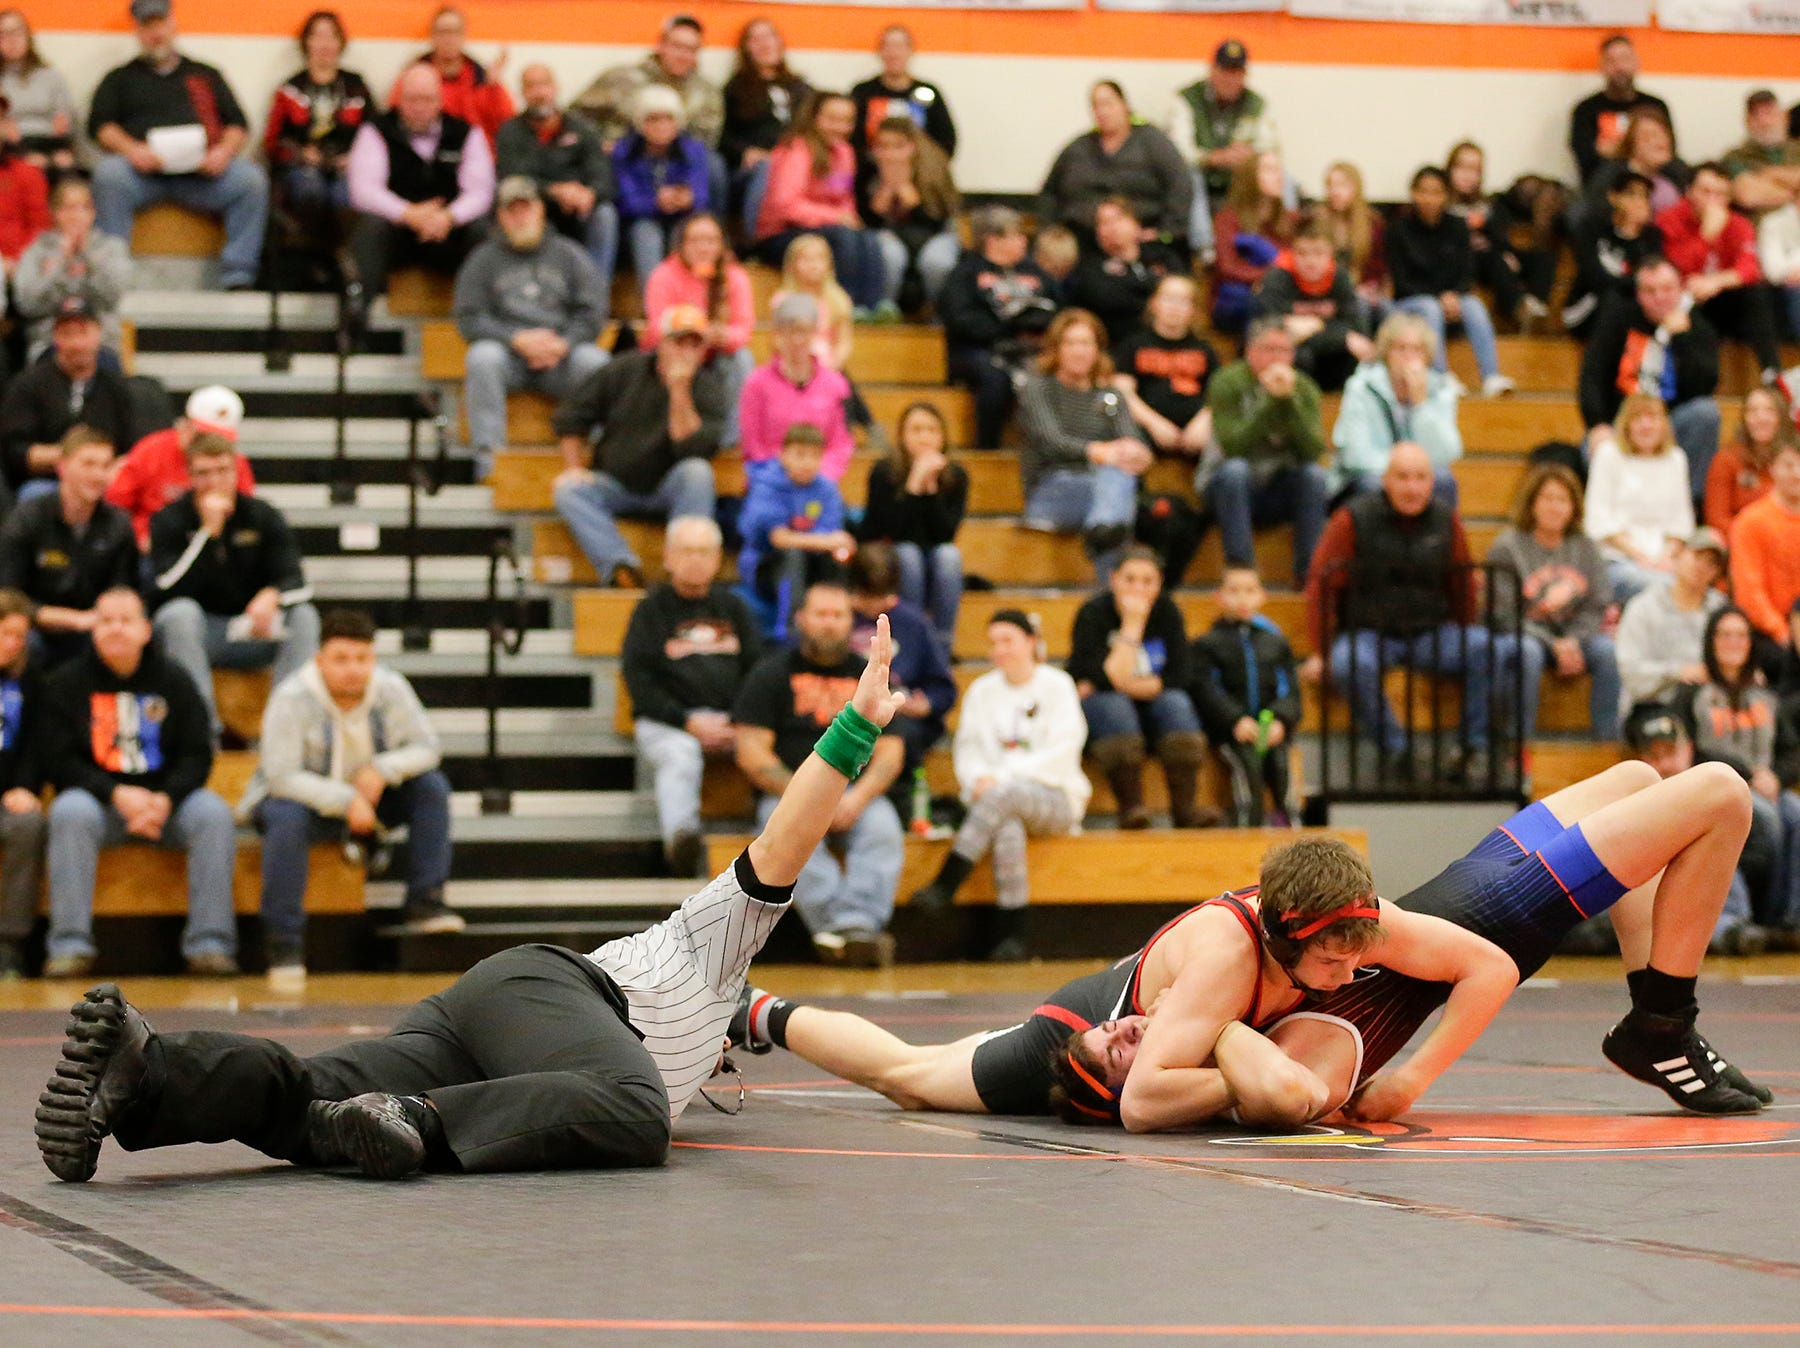 "St. Mary's Springs Academy/North Fond du Lac High School wrestling""s Jacob Hopp wrestles against Lomira High School's Adam Sauer during their match in North Fond du Lac. Sauer won the match by a pin and Springs/North Fond du Lac won the meet 48-28. Doug Raflik/USA TODAY NETWORK-Wisconsin"